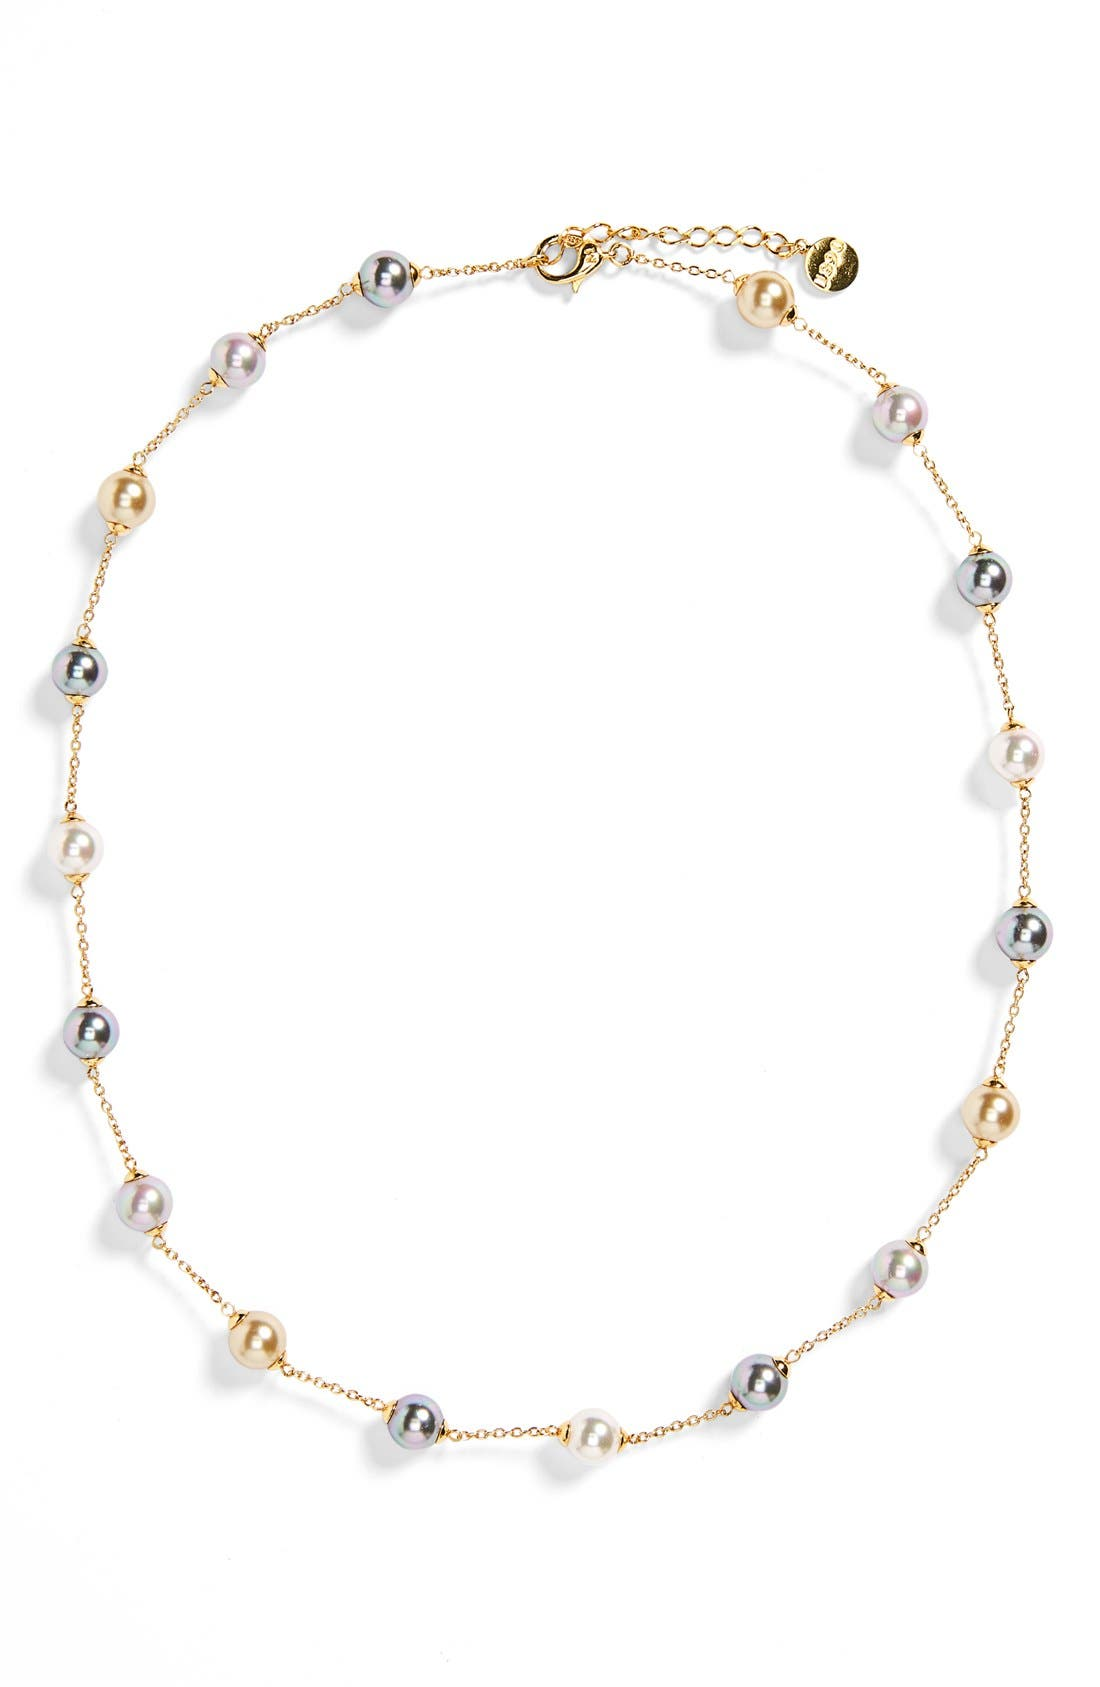 8mm Pearl Station Necklace,                         Main,                         color, Gold/ Champagne